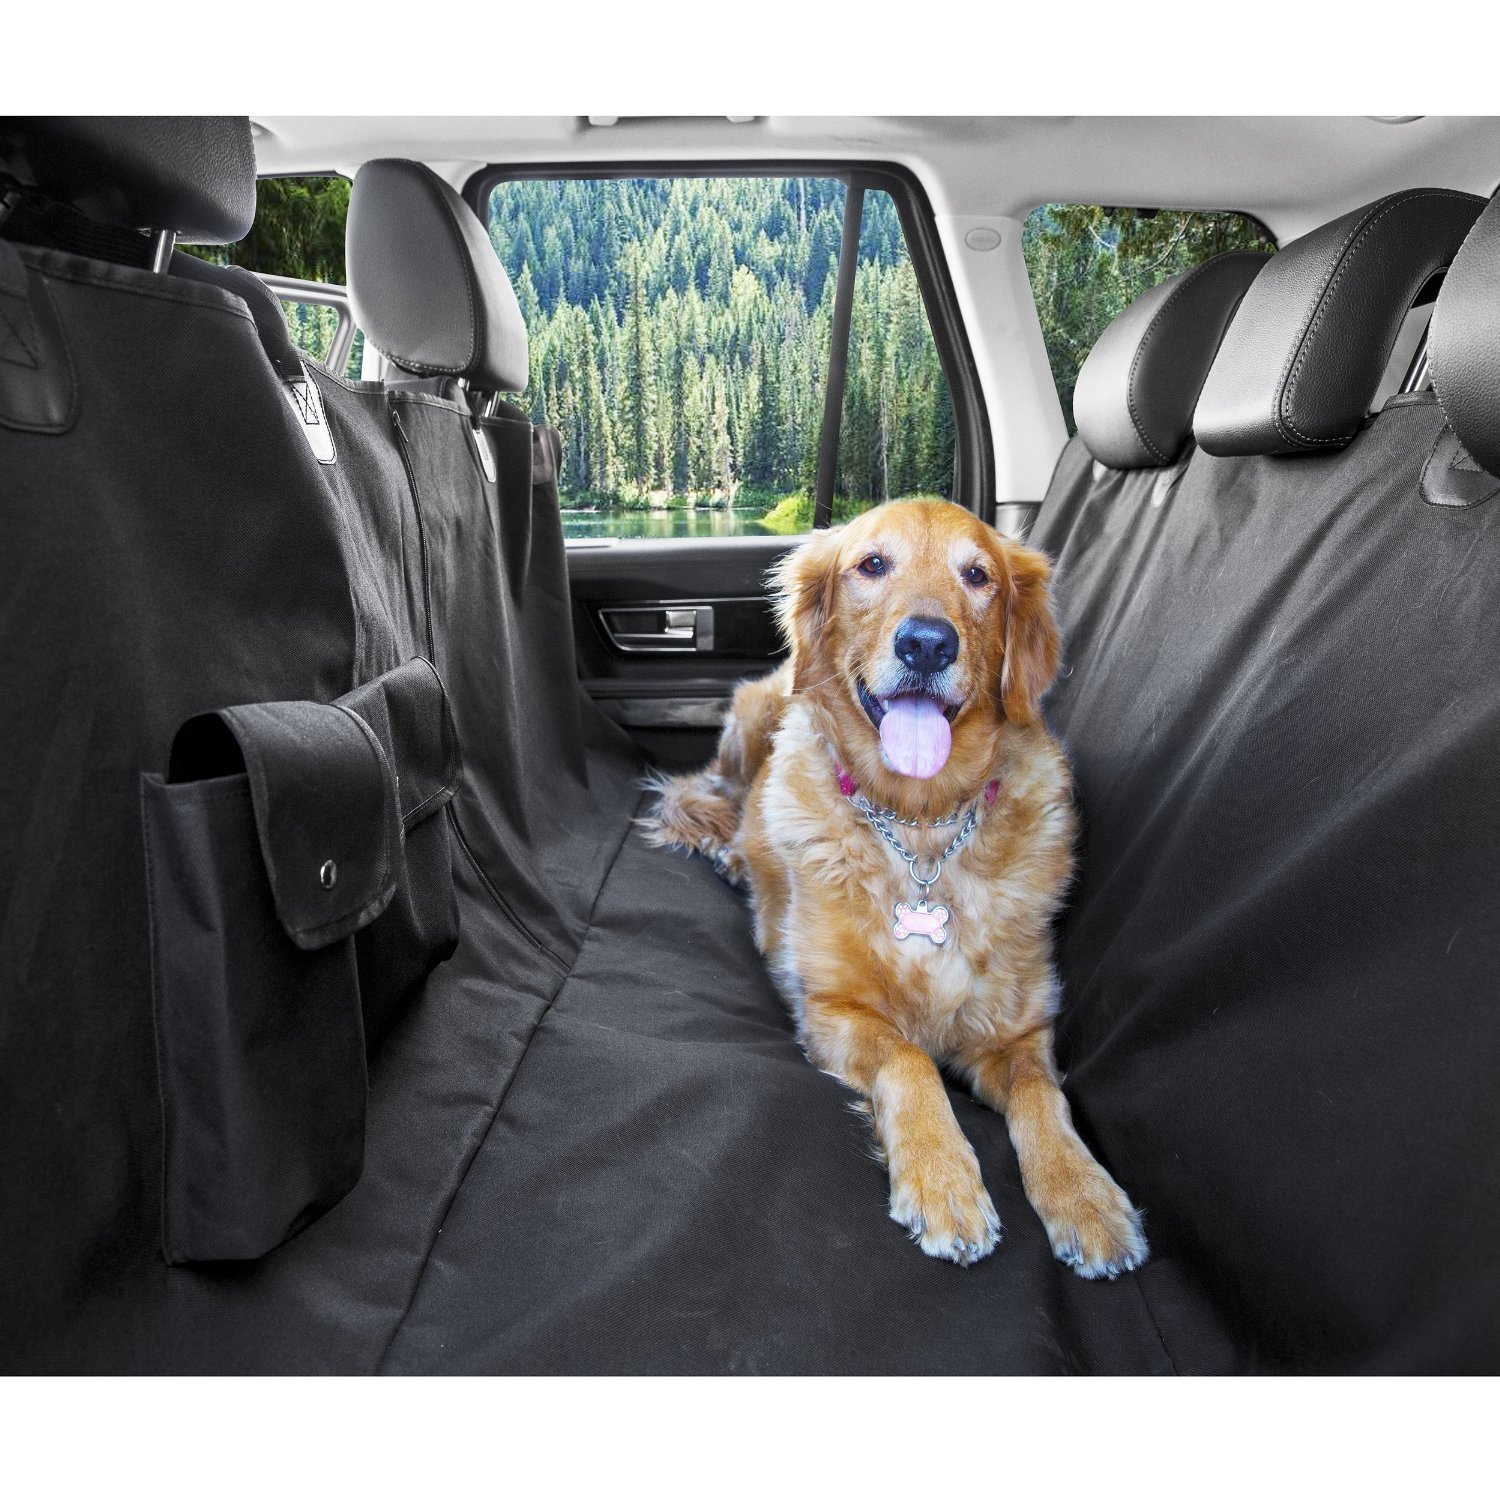 Dog Hammock Car Bench Seat Cover Rear Seat Protector for Pets 47 x 56 Inches Pettom Waterproof Dog Seat Cover Washable Back Seat Dog Cover for Cars A Free Pet Car Safety Seat Belt